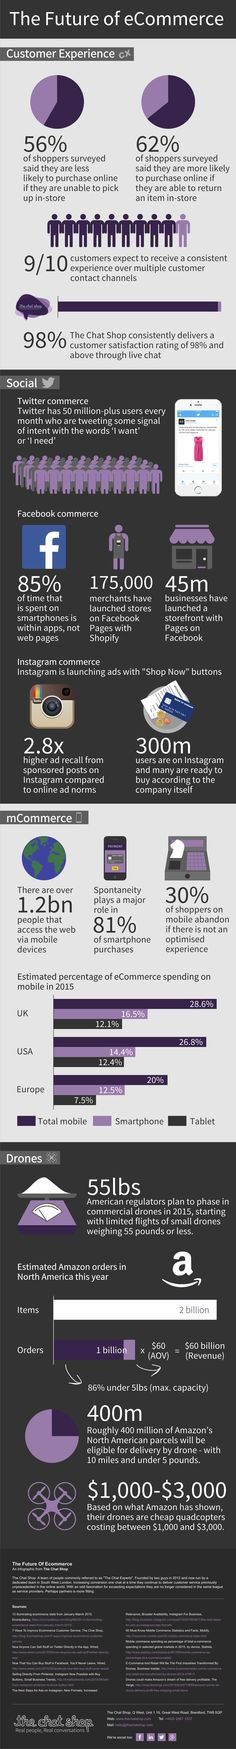 What the future holds for ecommerce